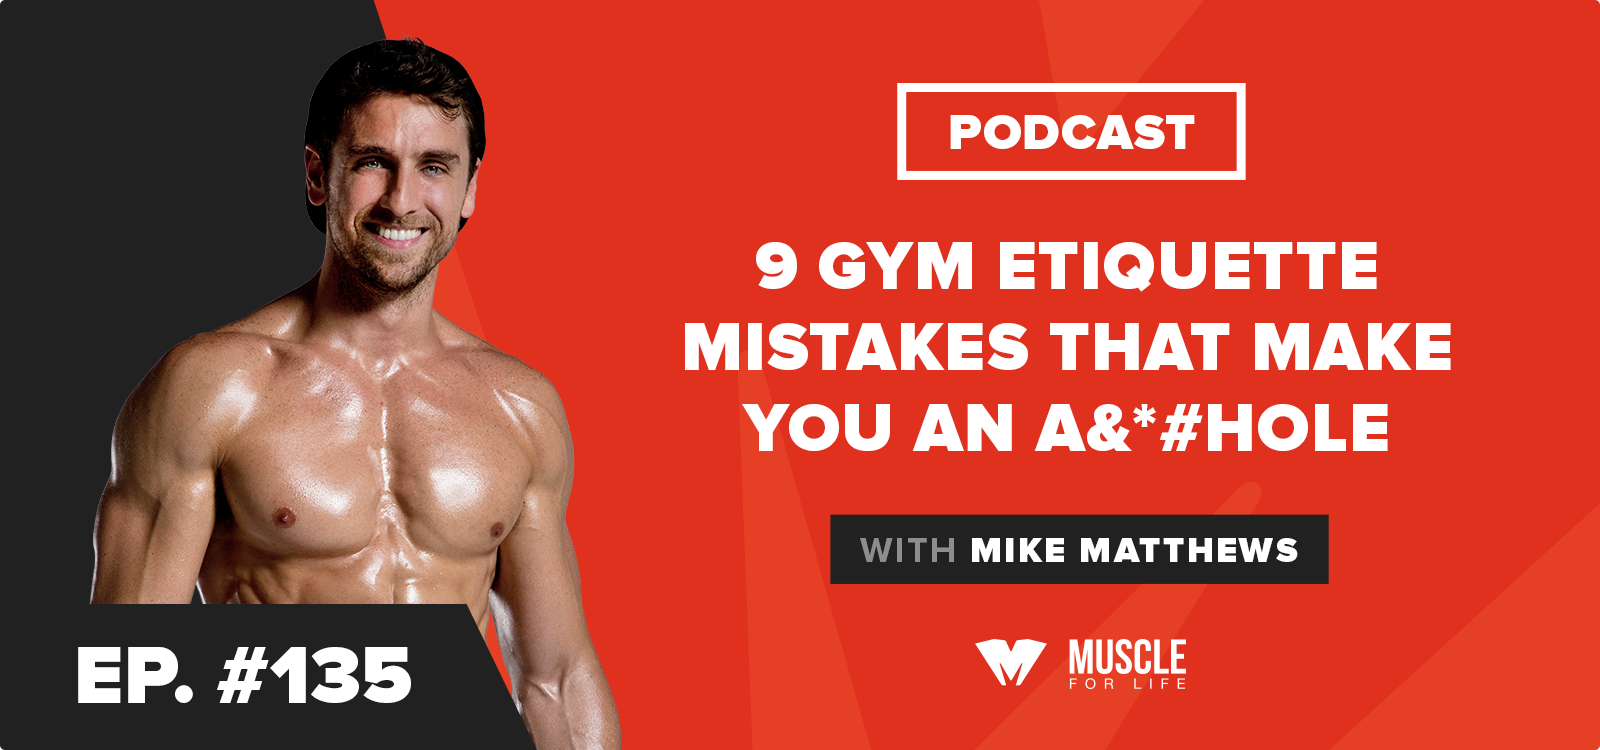 9 Gym Etiquette Mistakes That Make You an A*&hole